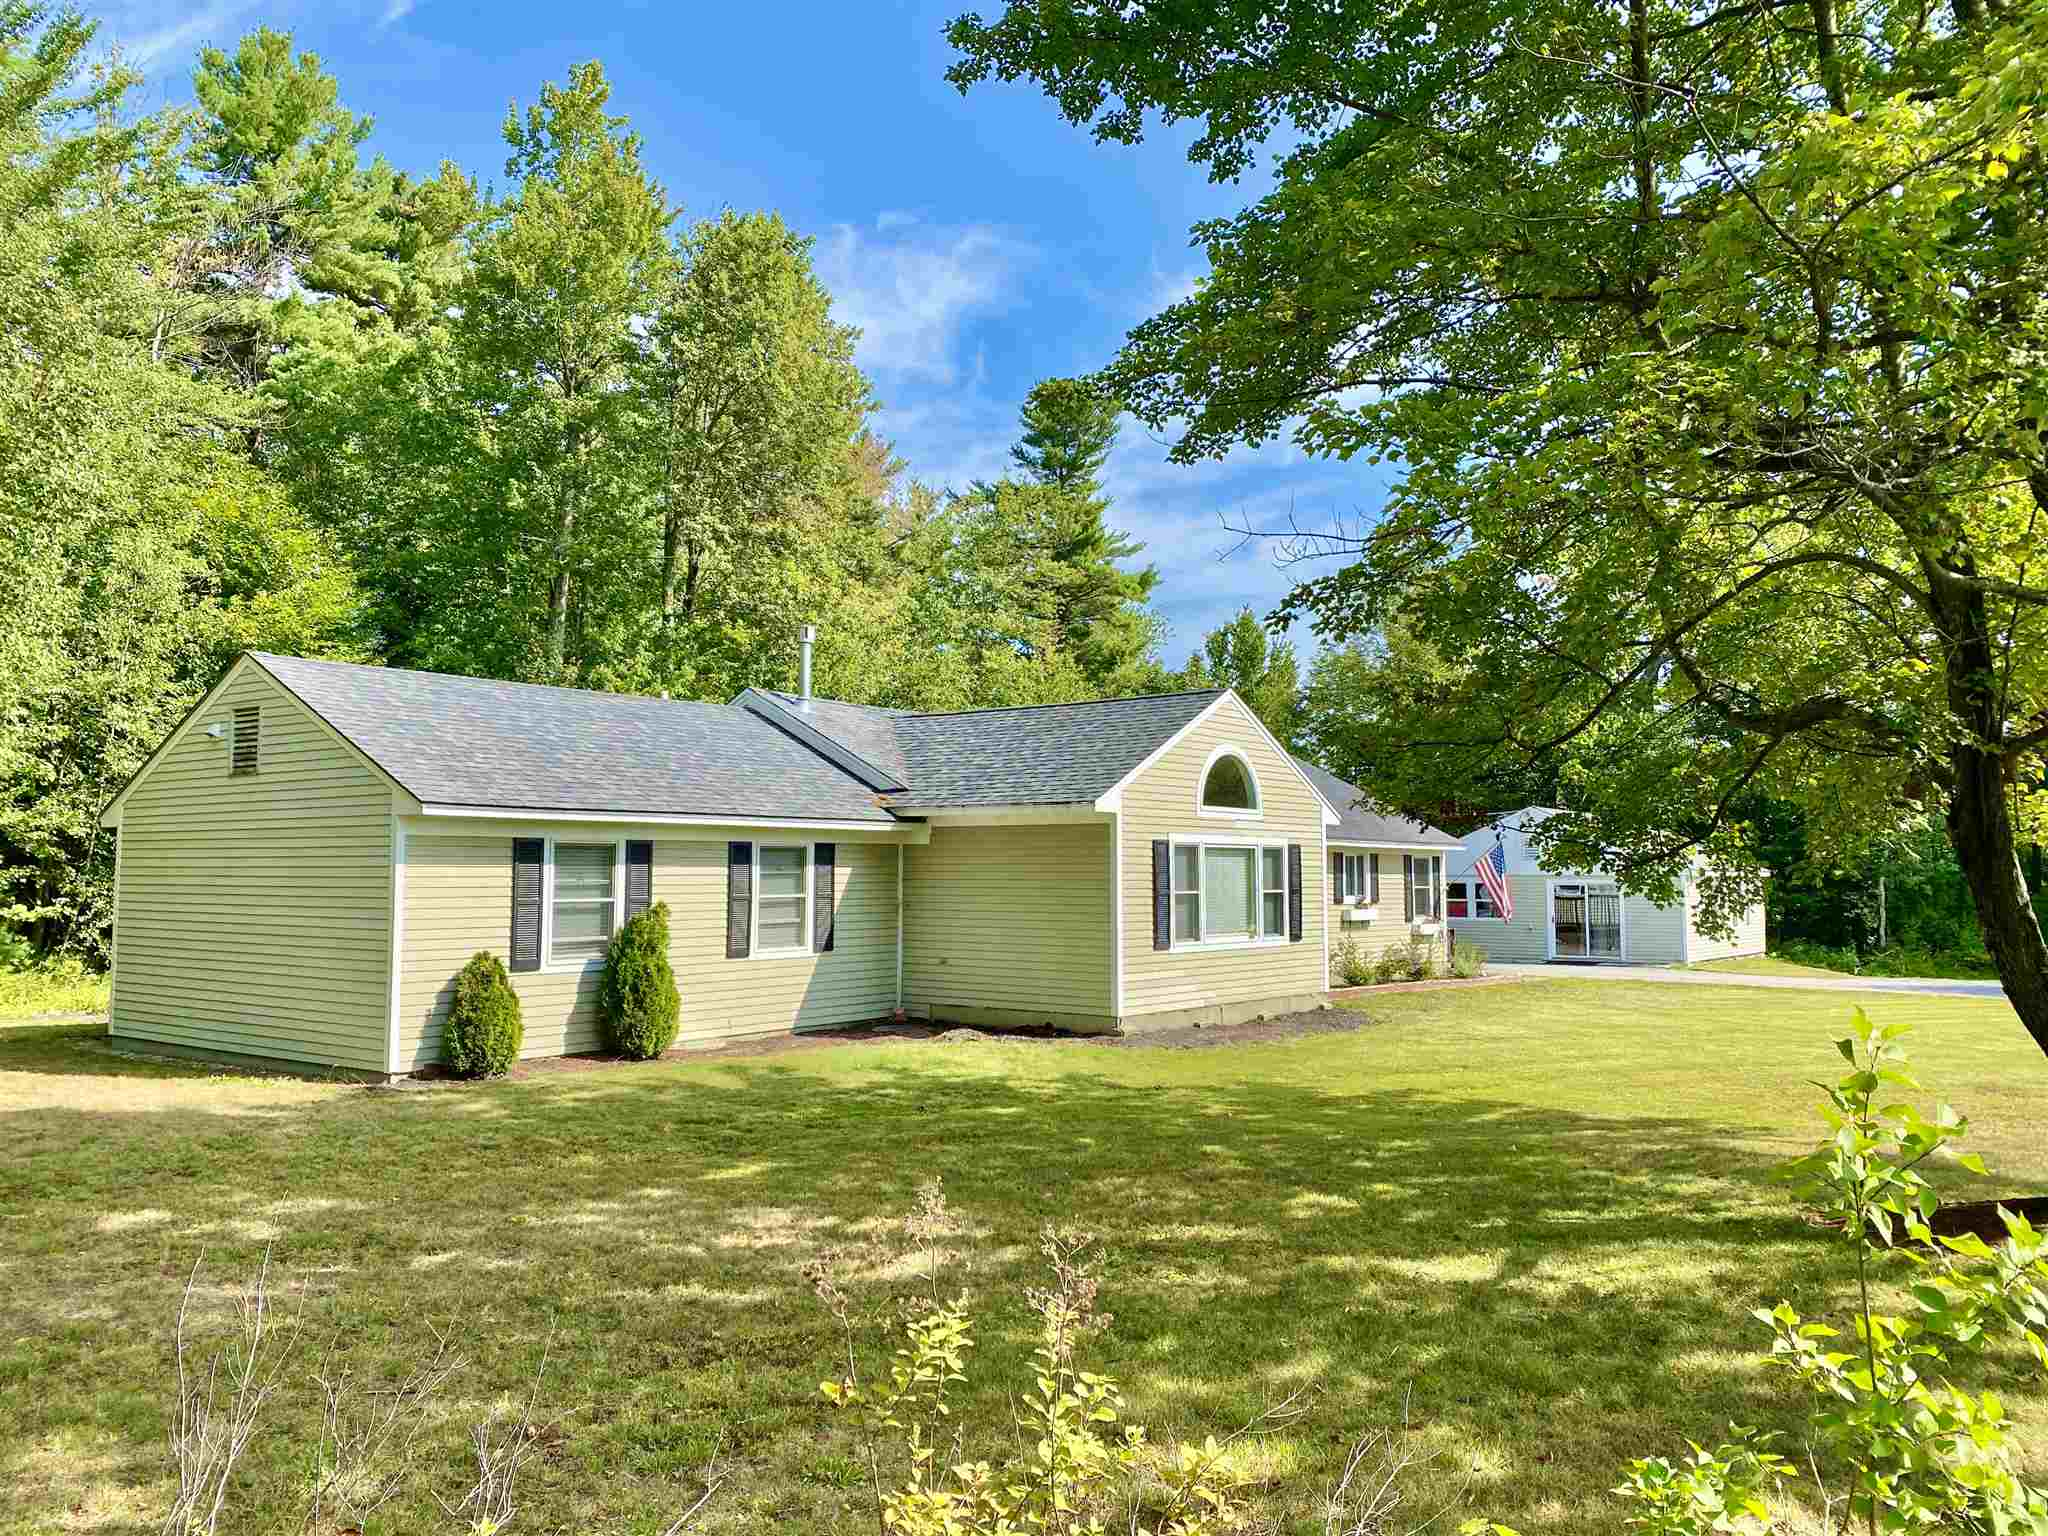 MLS 4805349: 1462 King Hill Road, New London NH